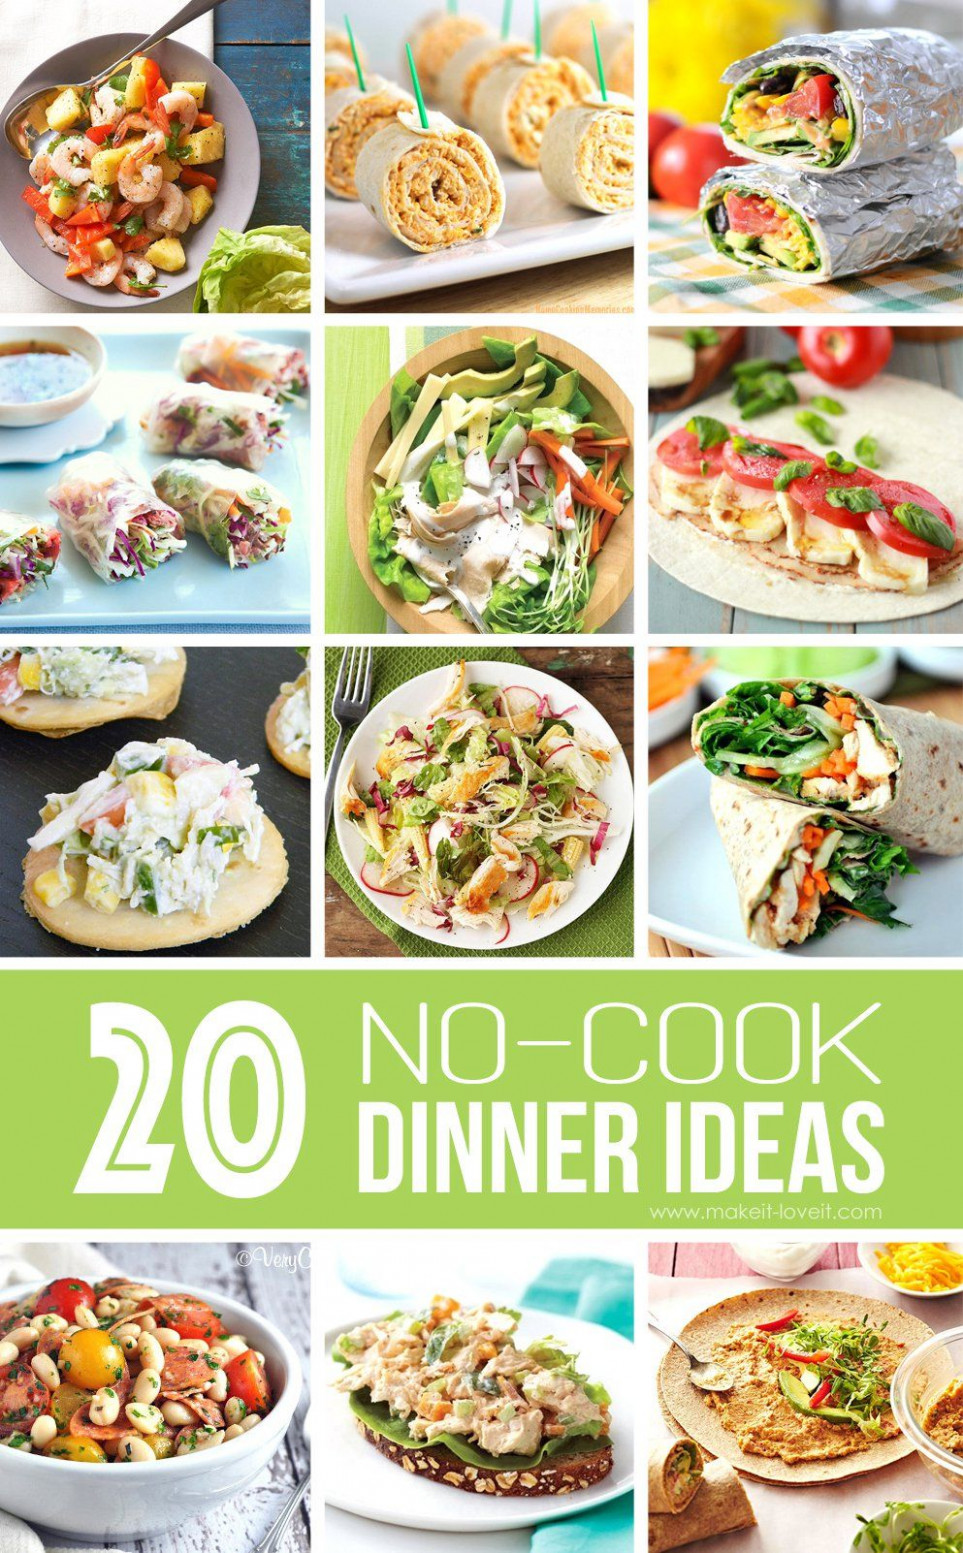 14 NO-COOK Dinner Ideas…great for summer! | Hot day dinners ..